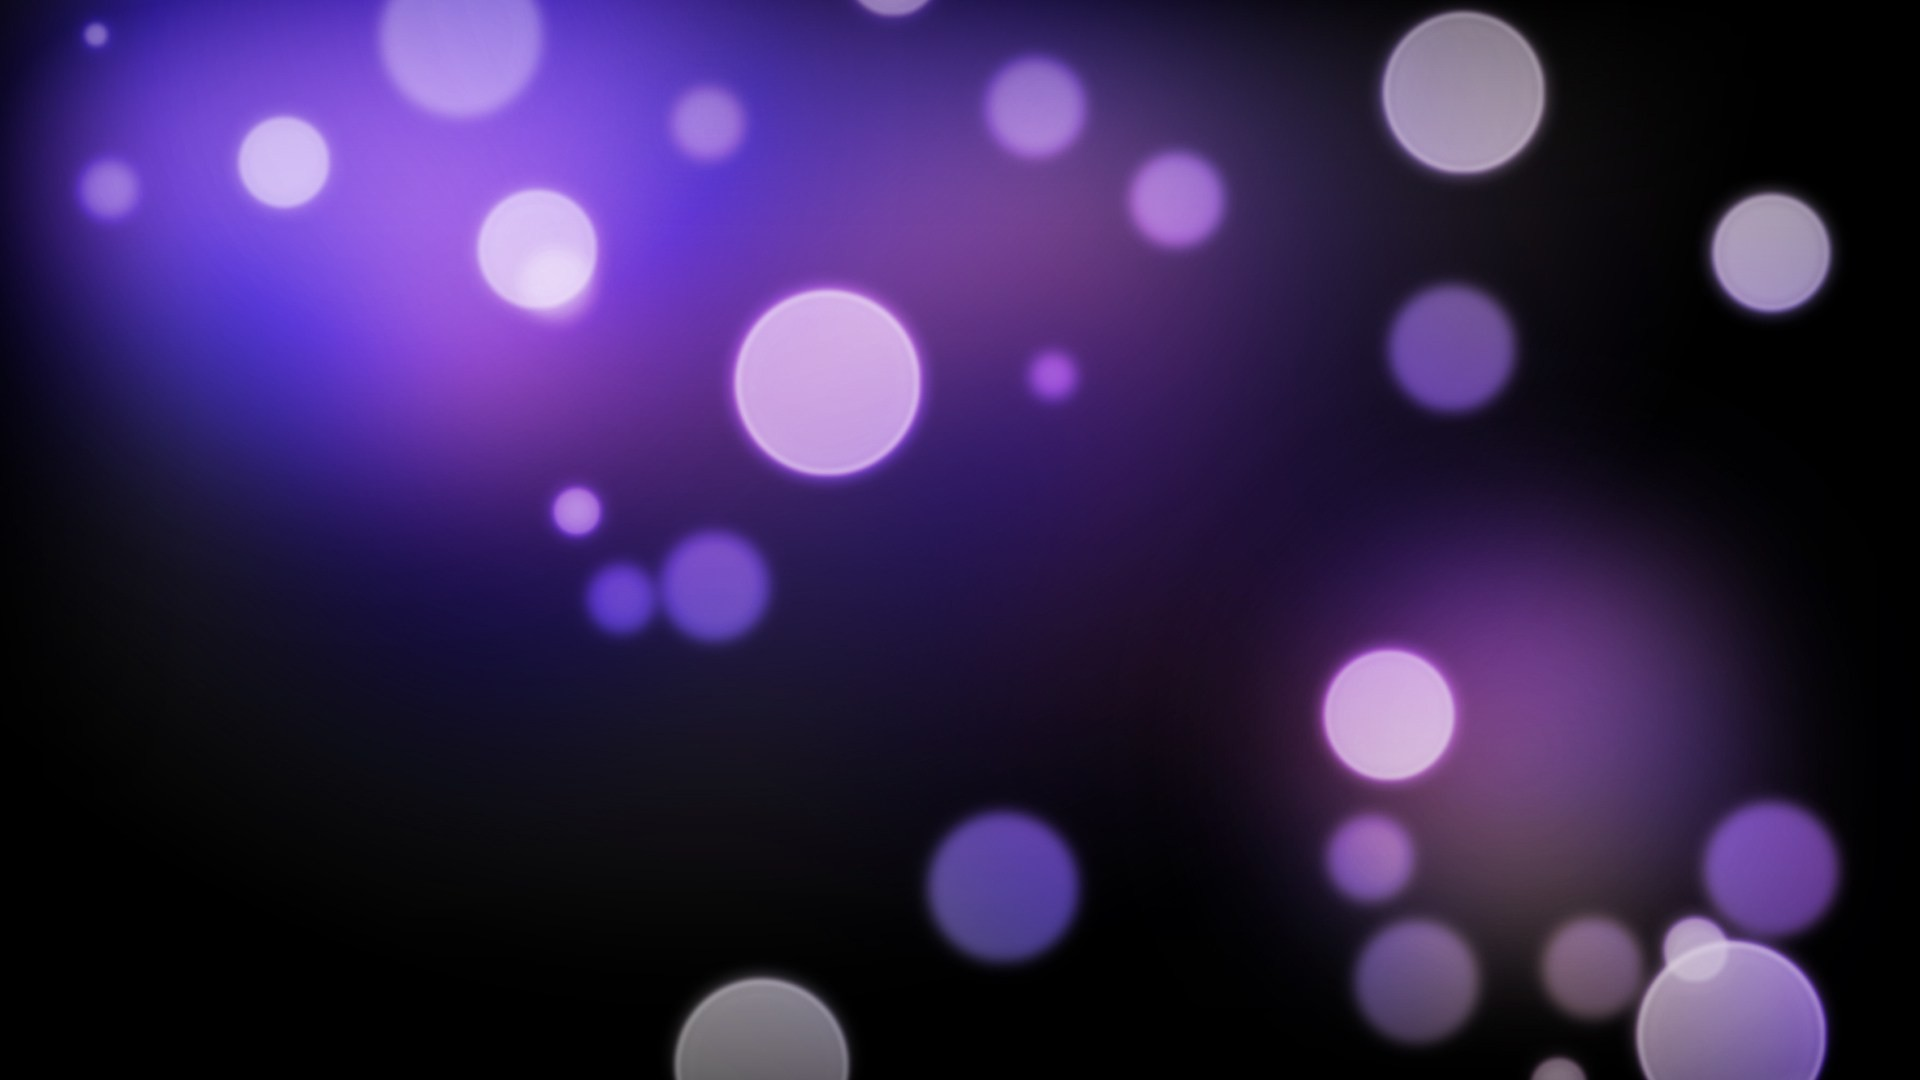 … Awesome Cute Purple Backgrounds Wallpaper of awesome full screen HD  wallpapers to download for free.